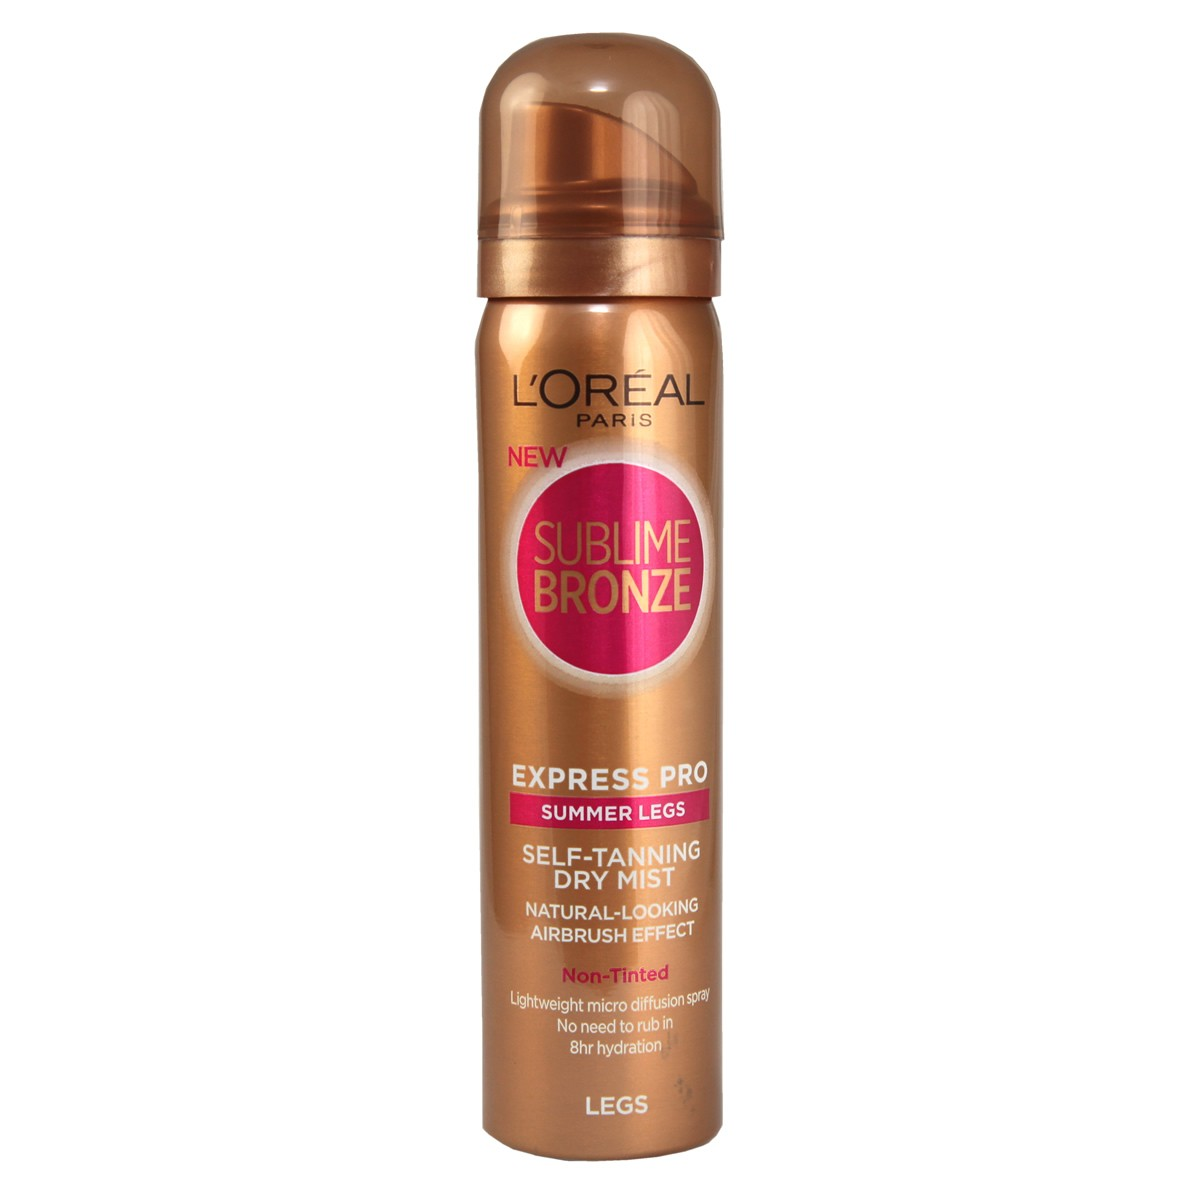 L'Oreal Paris Sublime Bronze Express Pro Summer Legs Self-tanning Dry Mist